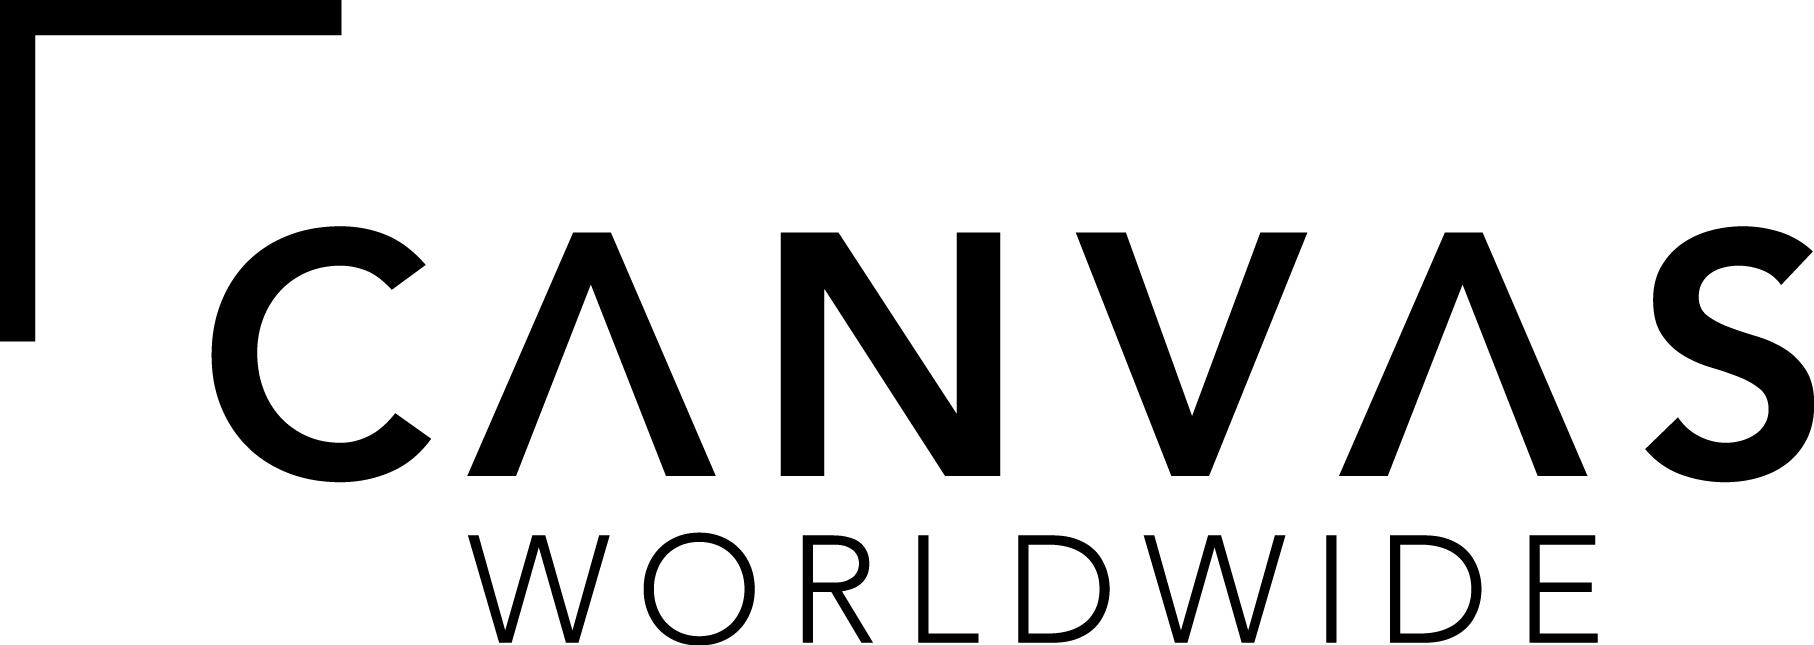 Canvas Worldwide